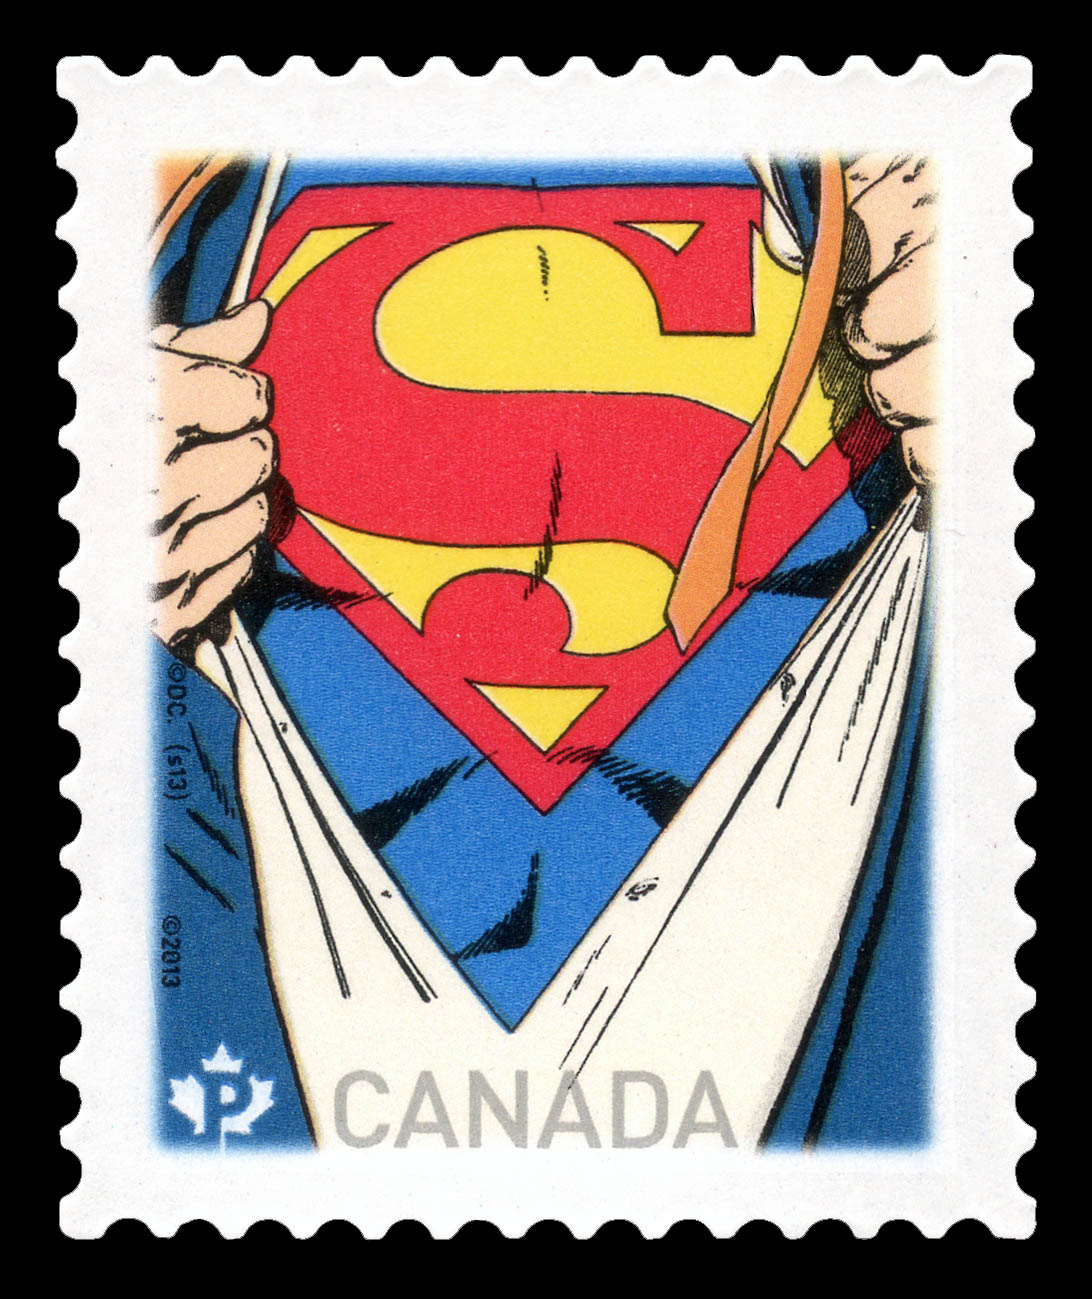 Superman Canada Postage Stamp | Superman - 75th Anniversary